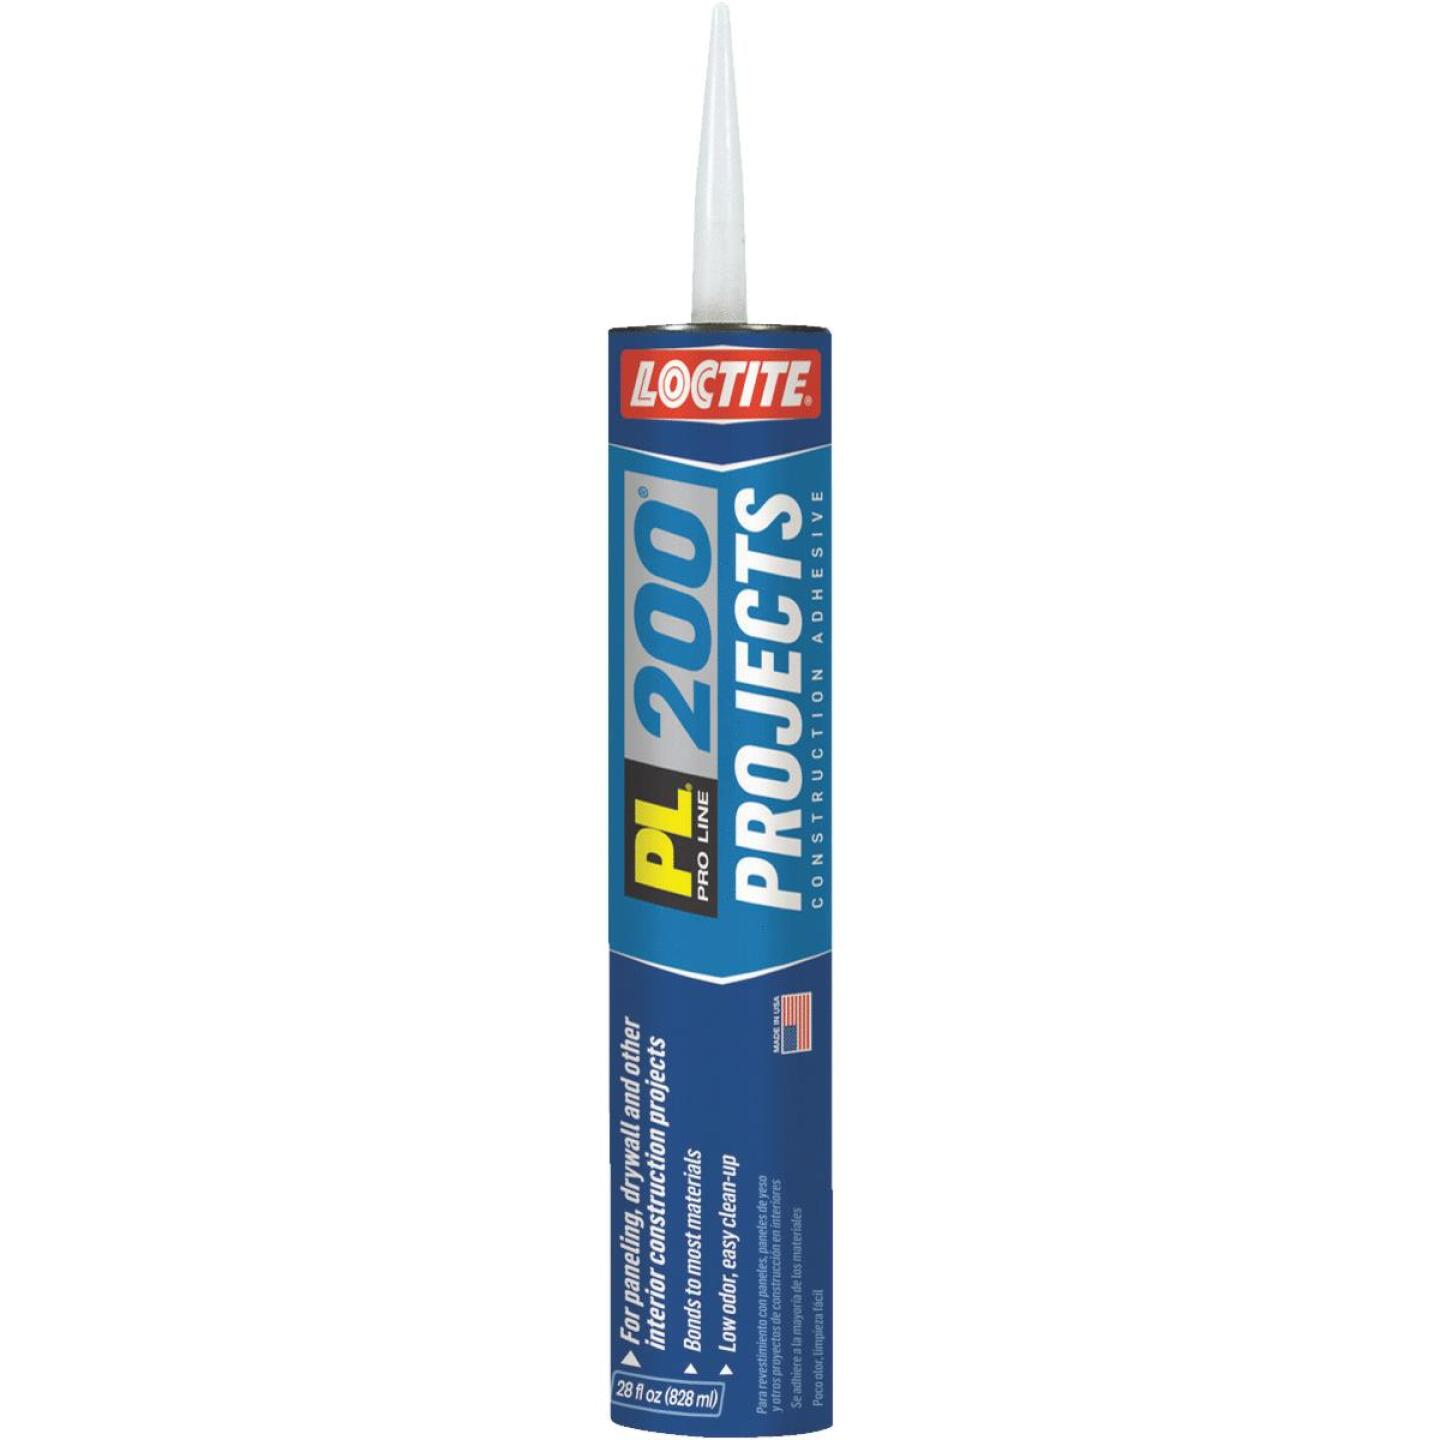 LOCTITE PL 200 28 Oz. Projects Construction Adhesive Image 1